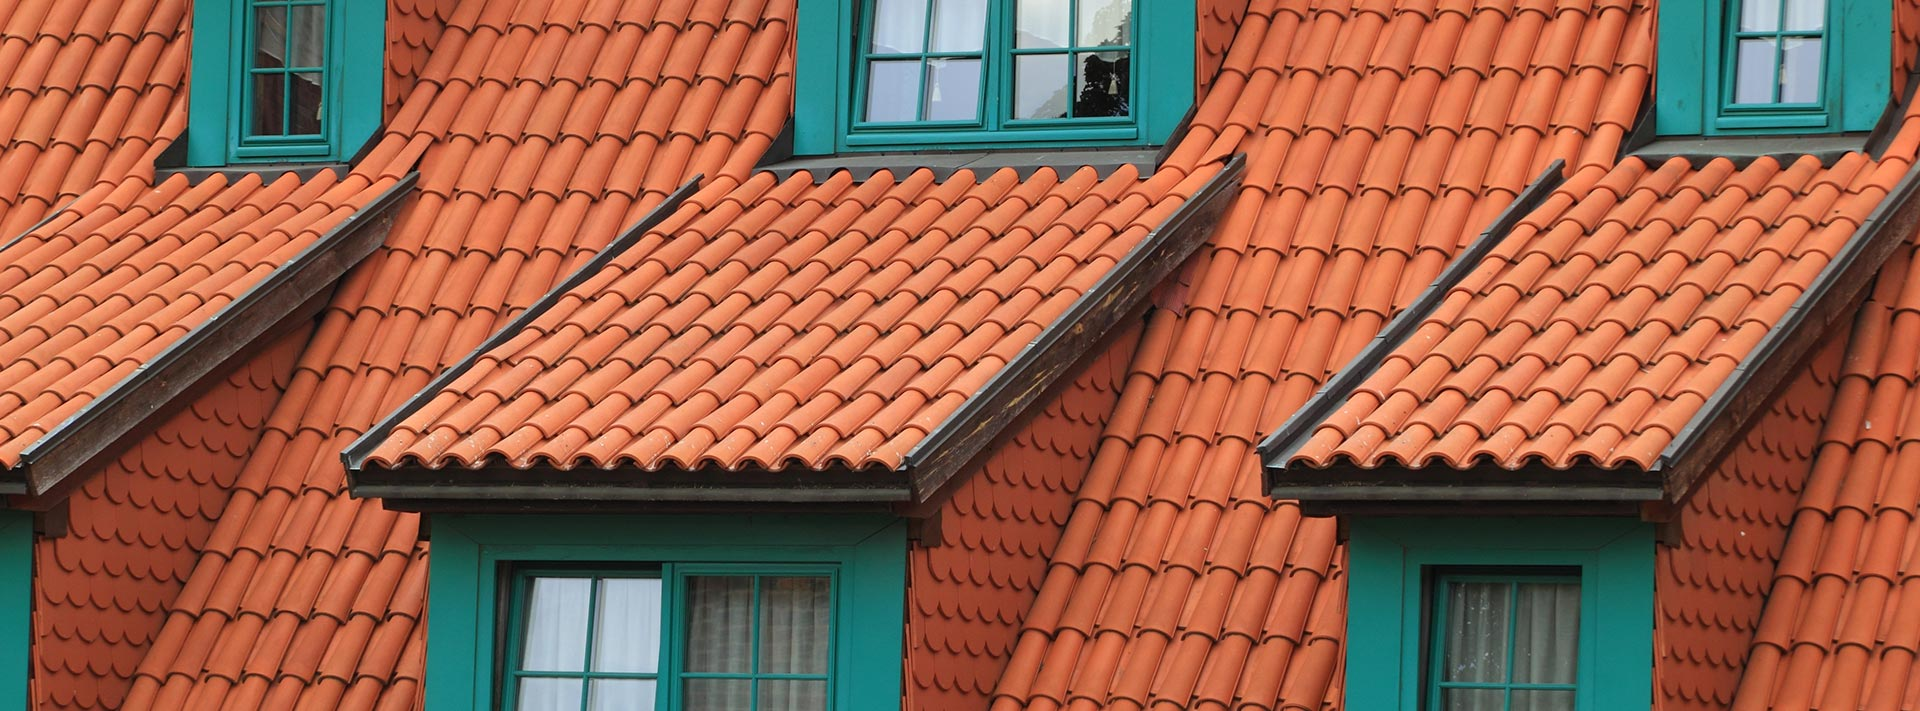 What are the advantages of a tiled roof?